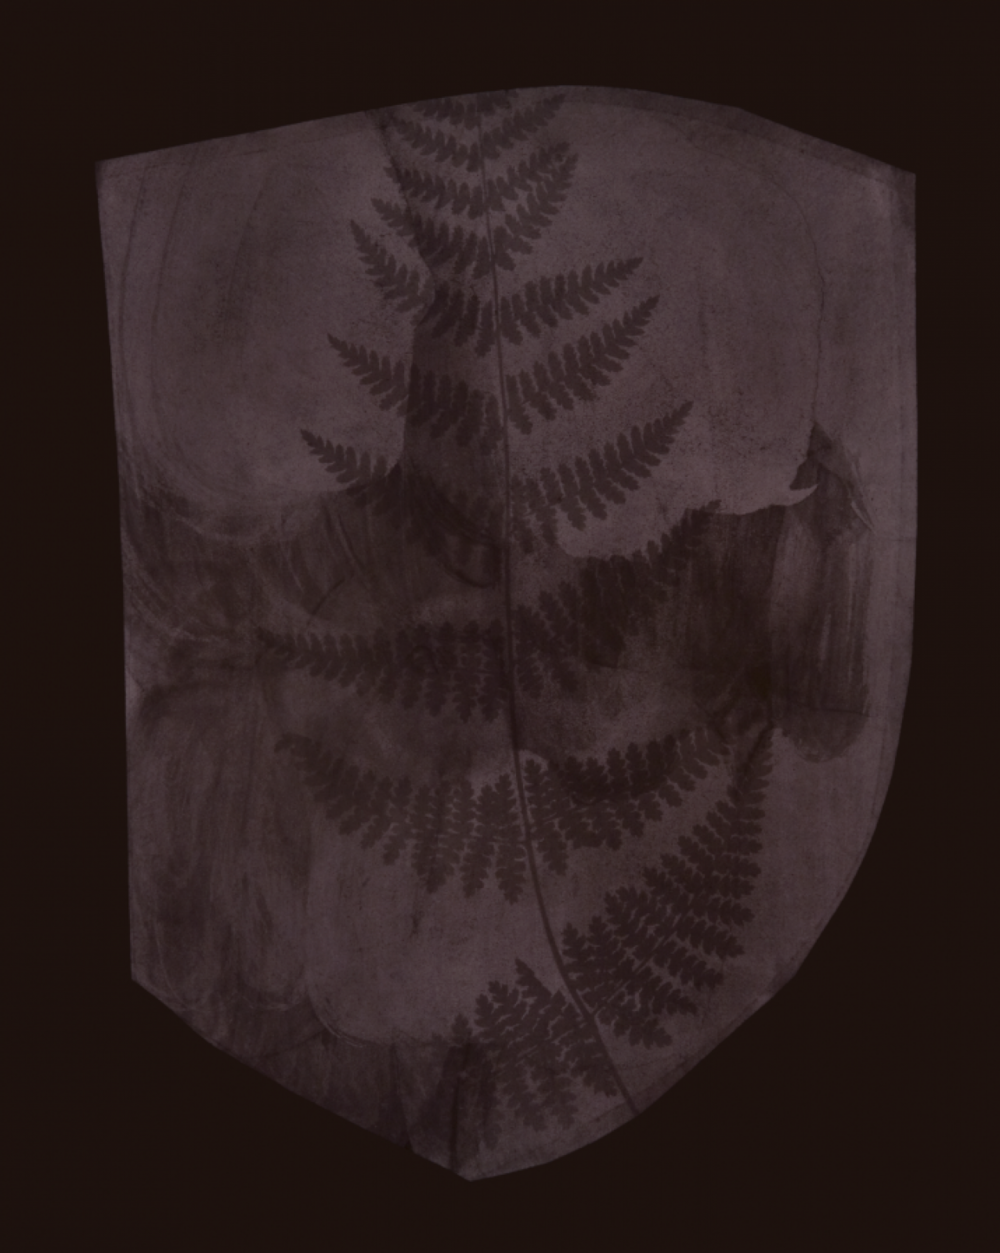 Hiroshi Sugimoto, Buckler Fern, March 6, 1839 or Earlier,  2008